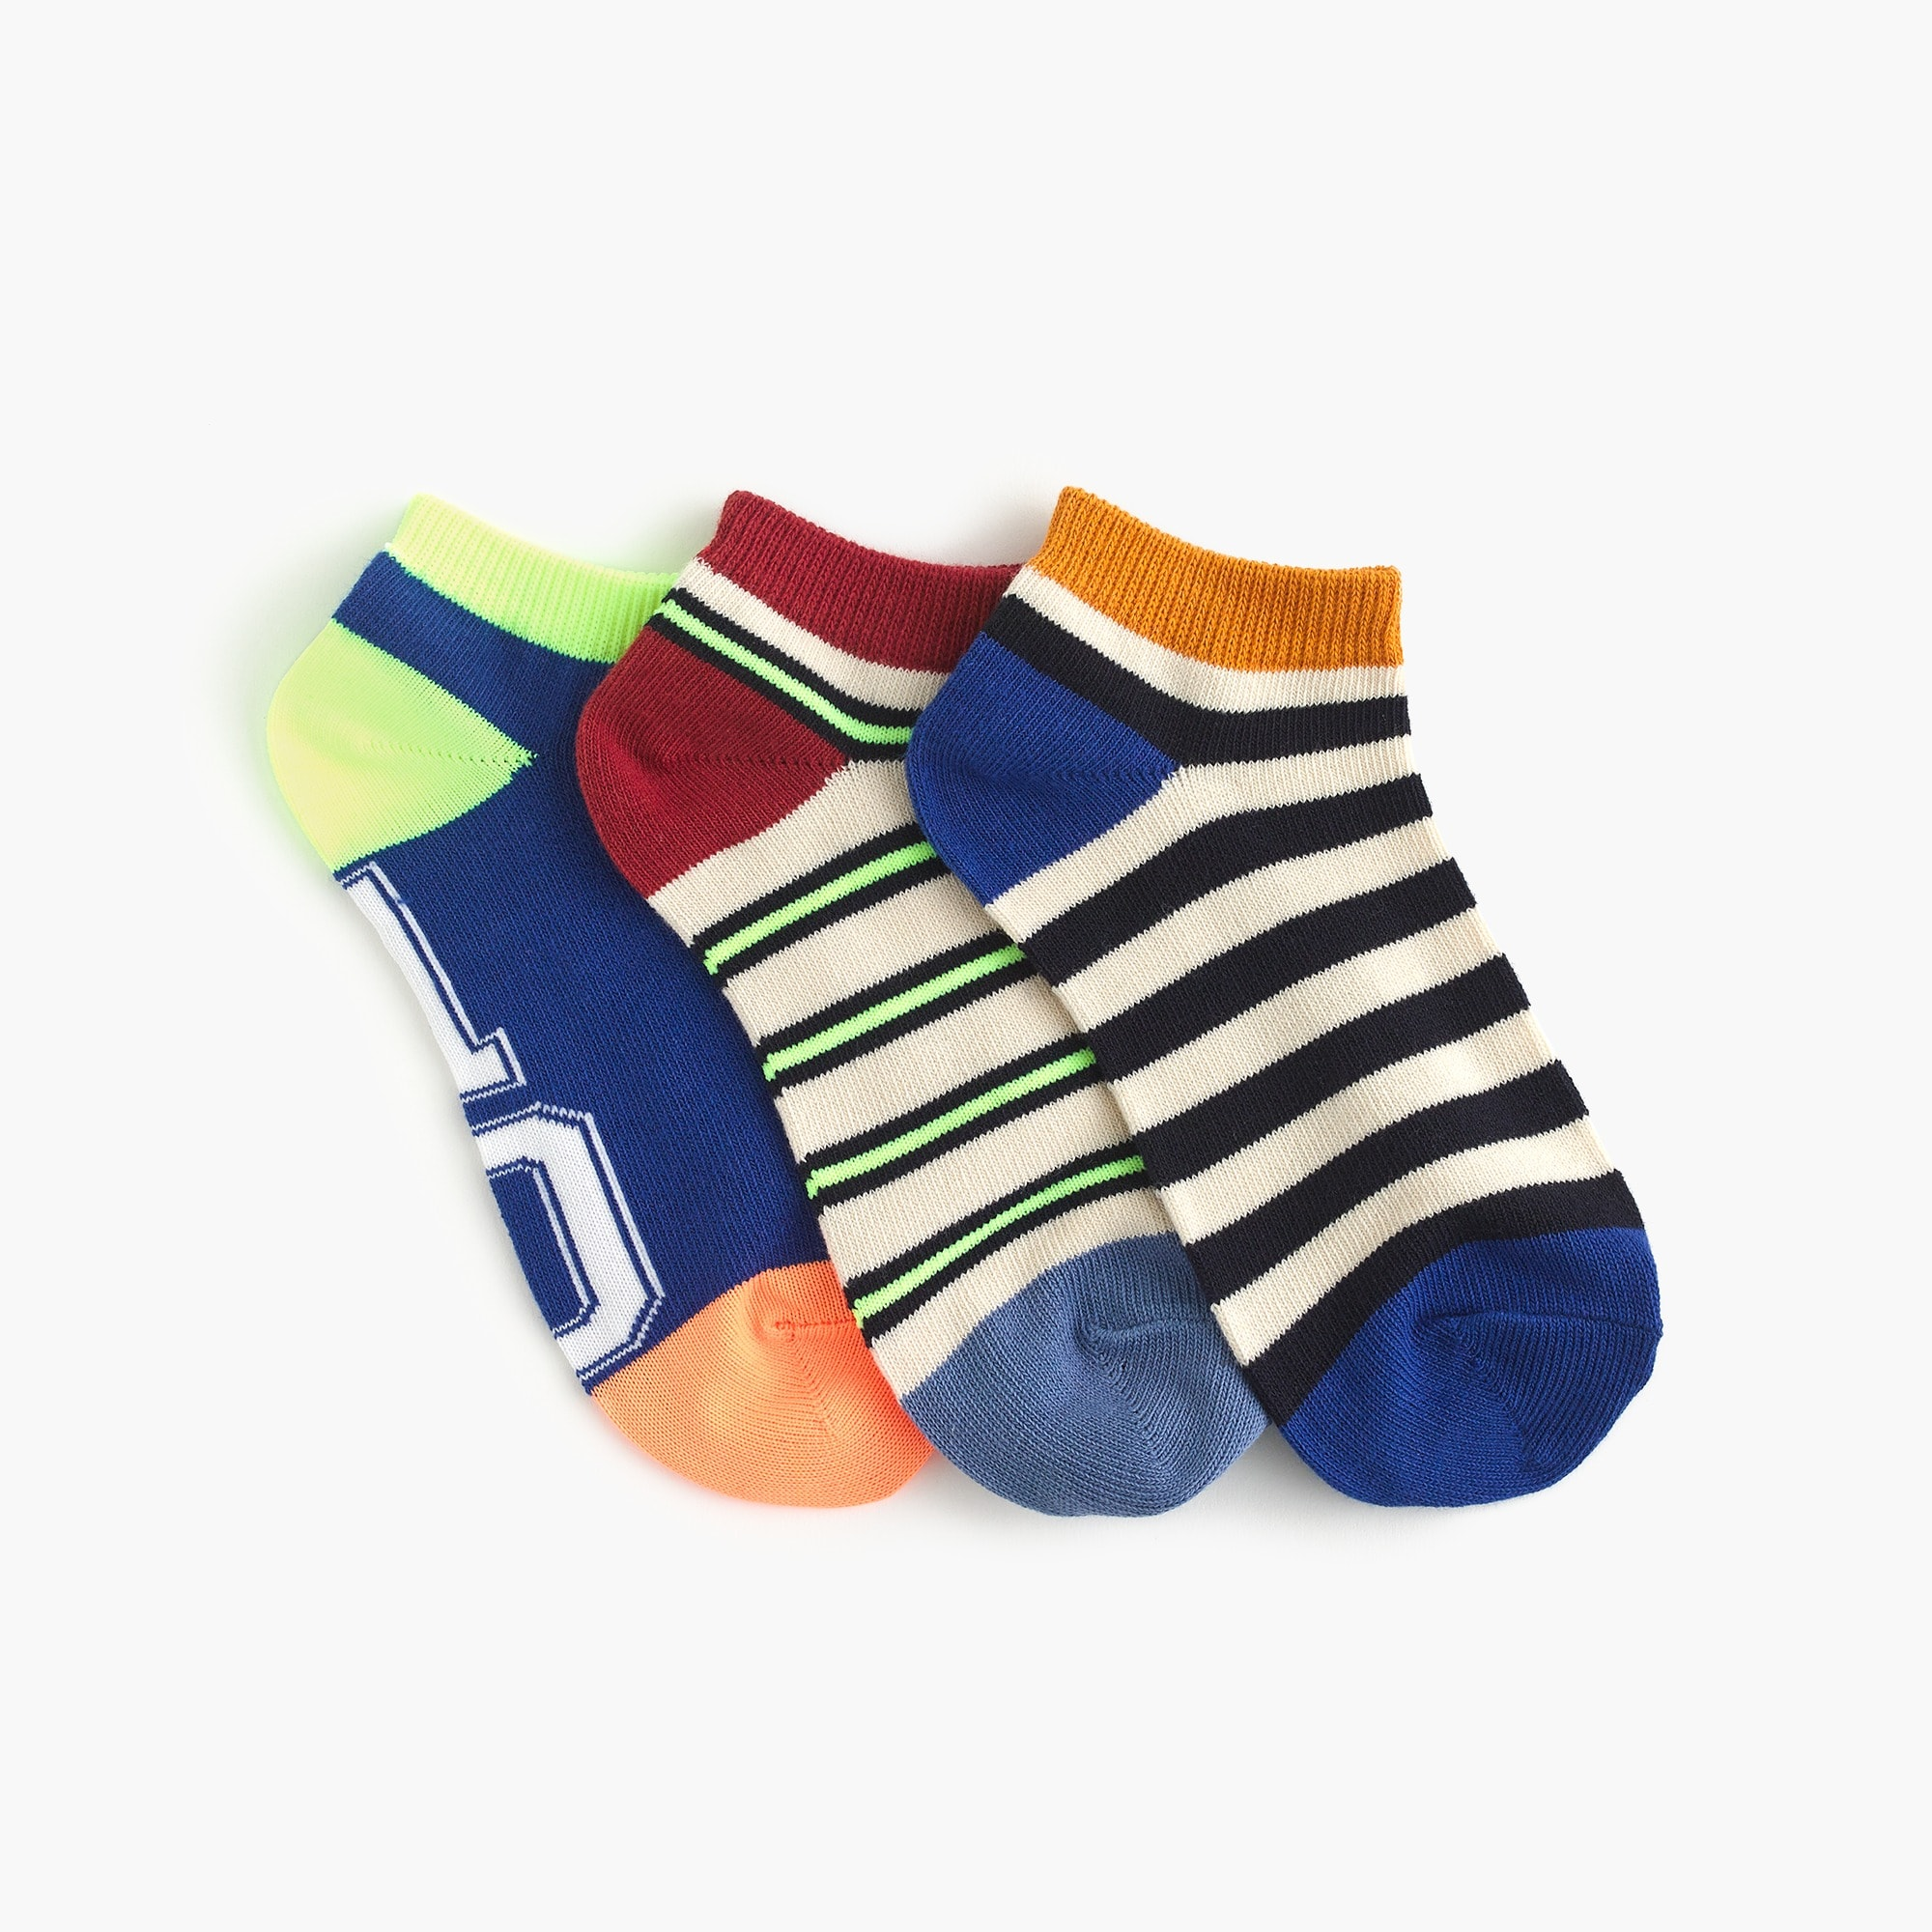 Boys' ankle socks three-pack boy accessories c